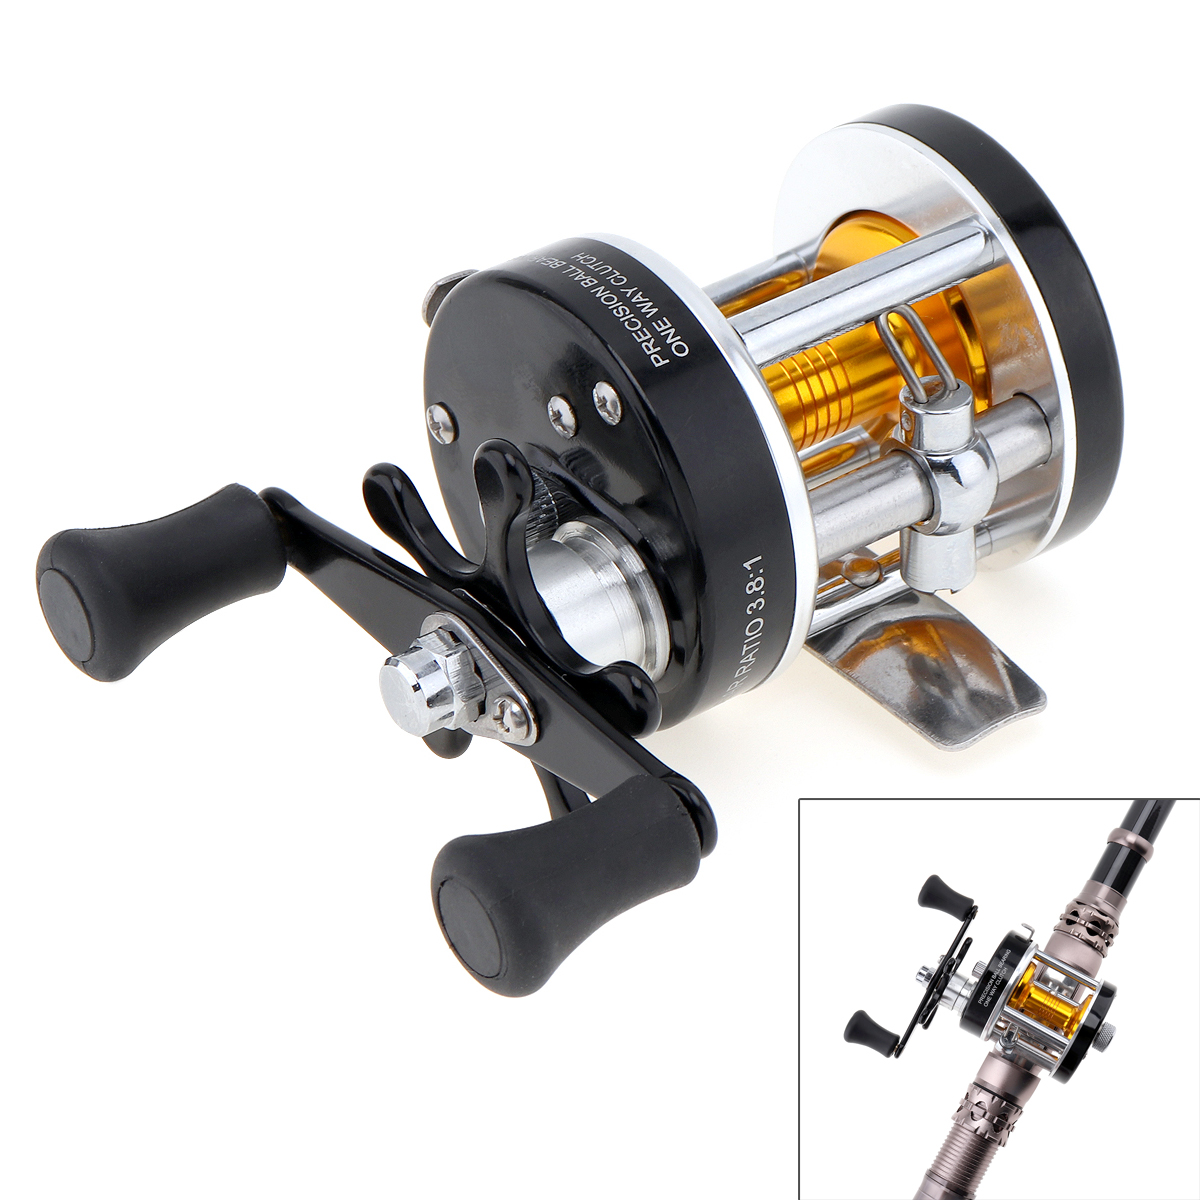 Rg CL-25A Metal Drum Fishing Reel Gear Ratio 3.8:1 Trolling Reel Casting Sea Fishing Reel Saltwater Bait Casting Reel Coil rg 6 2 1 9 1bb baitcasting drum saltwater fishing reel saltwater sea fishing reels bait casting surfcasting drum reel hg200